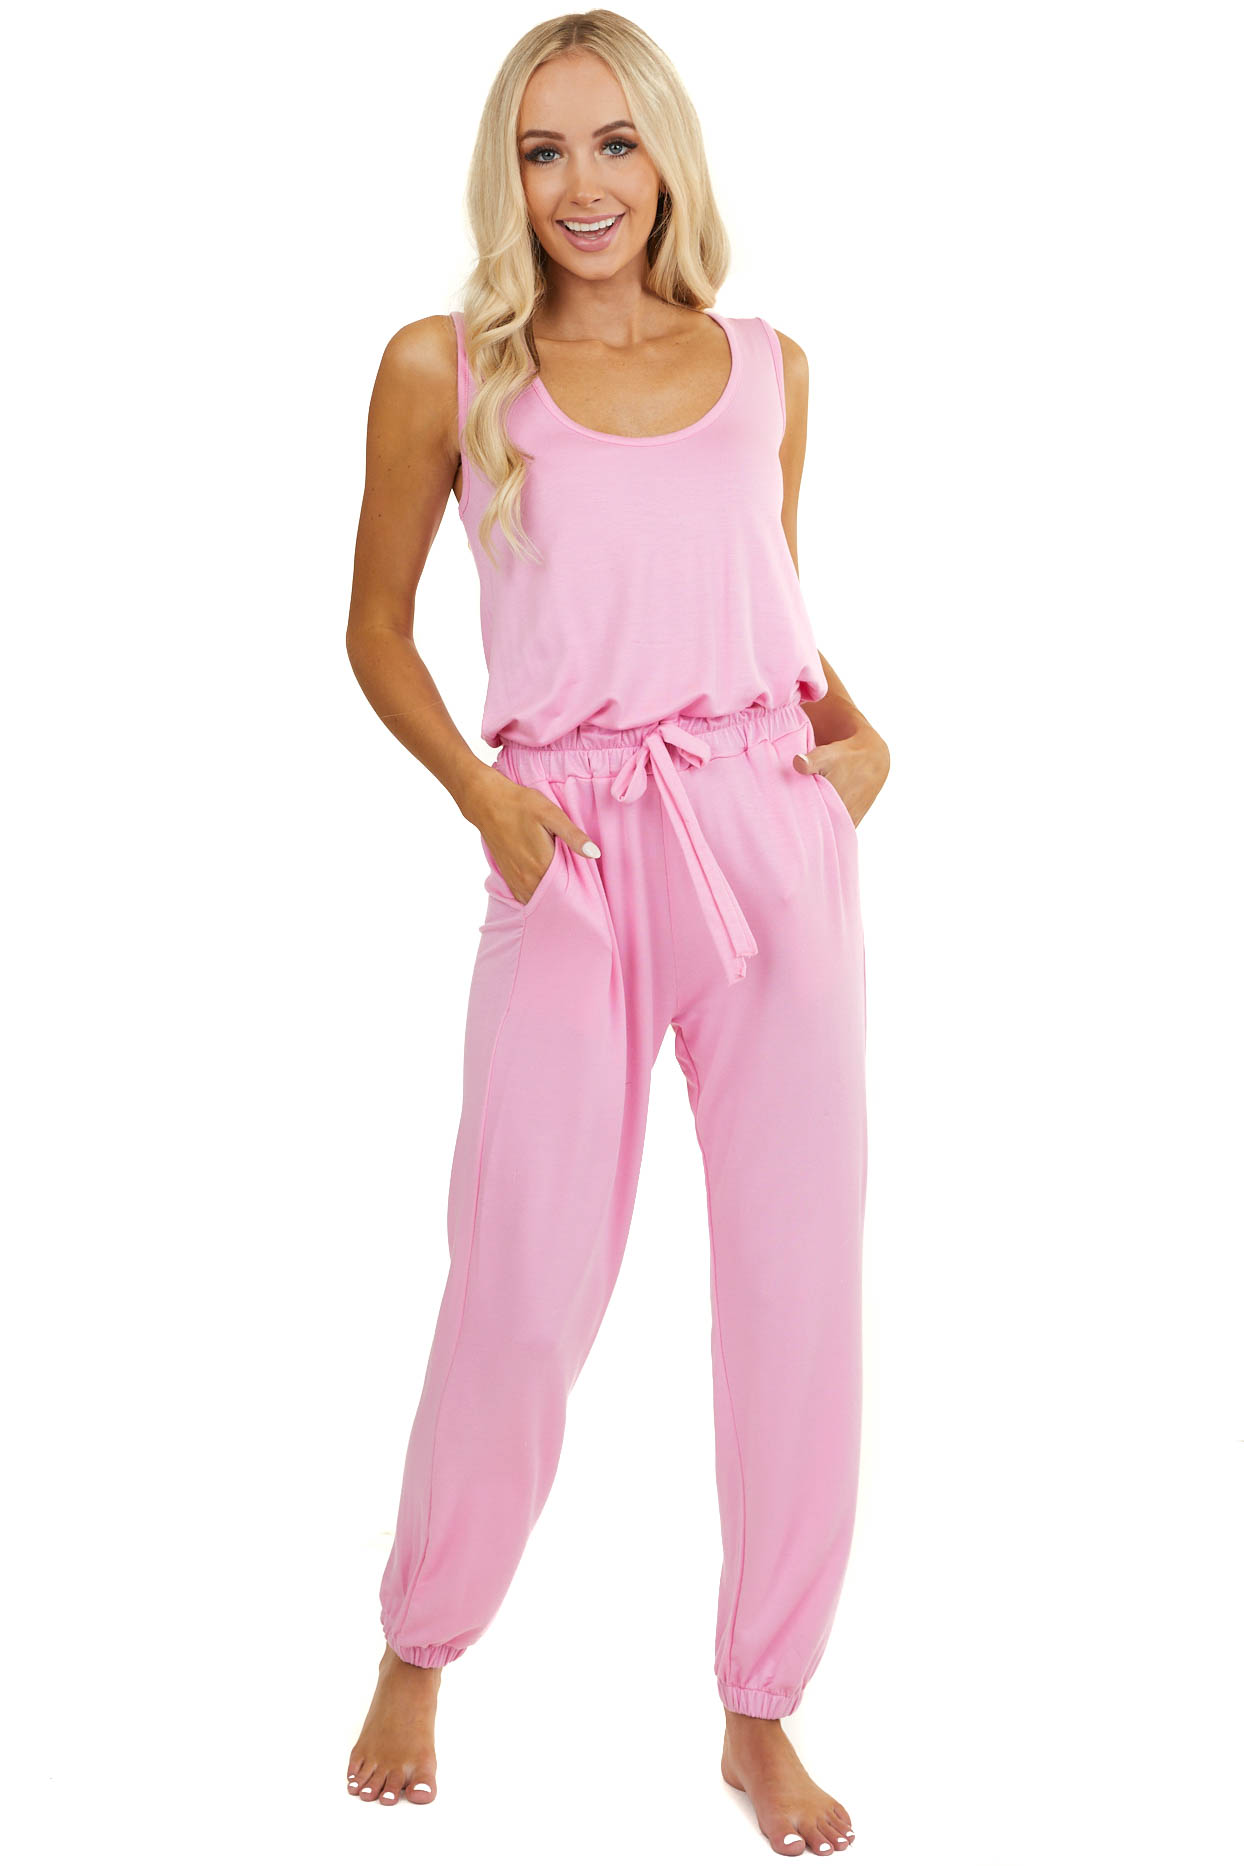 Bubble Gum Pink Elastic Waist Jumpsuit with Tie and Pockets